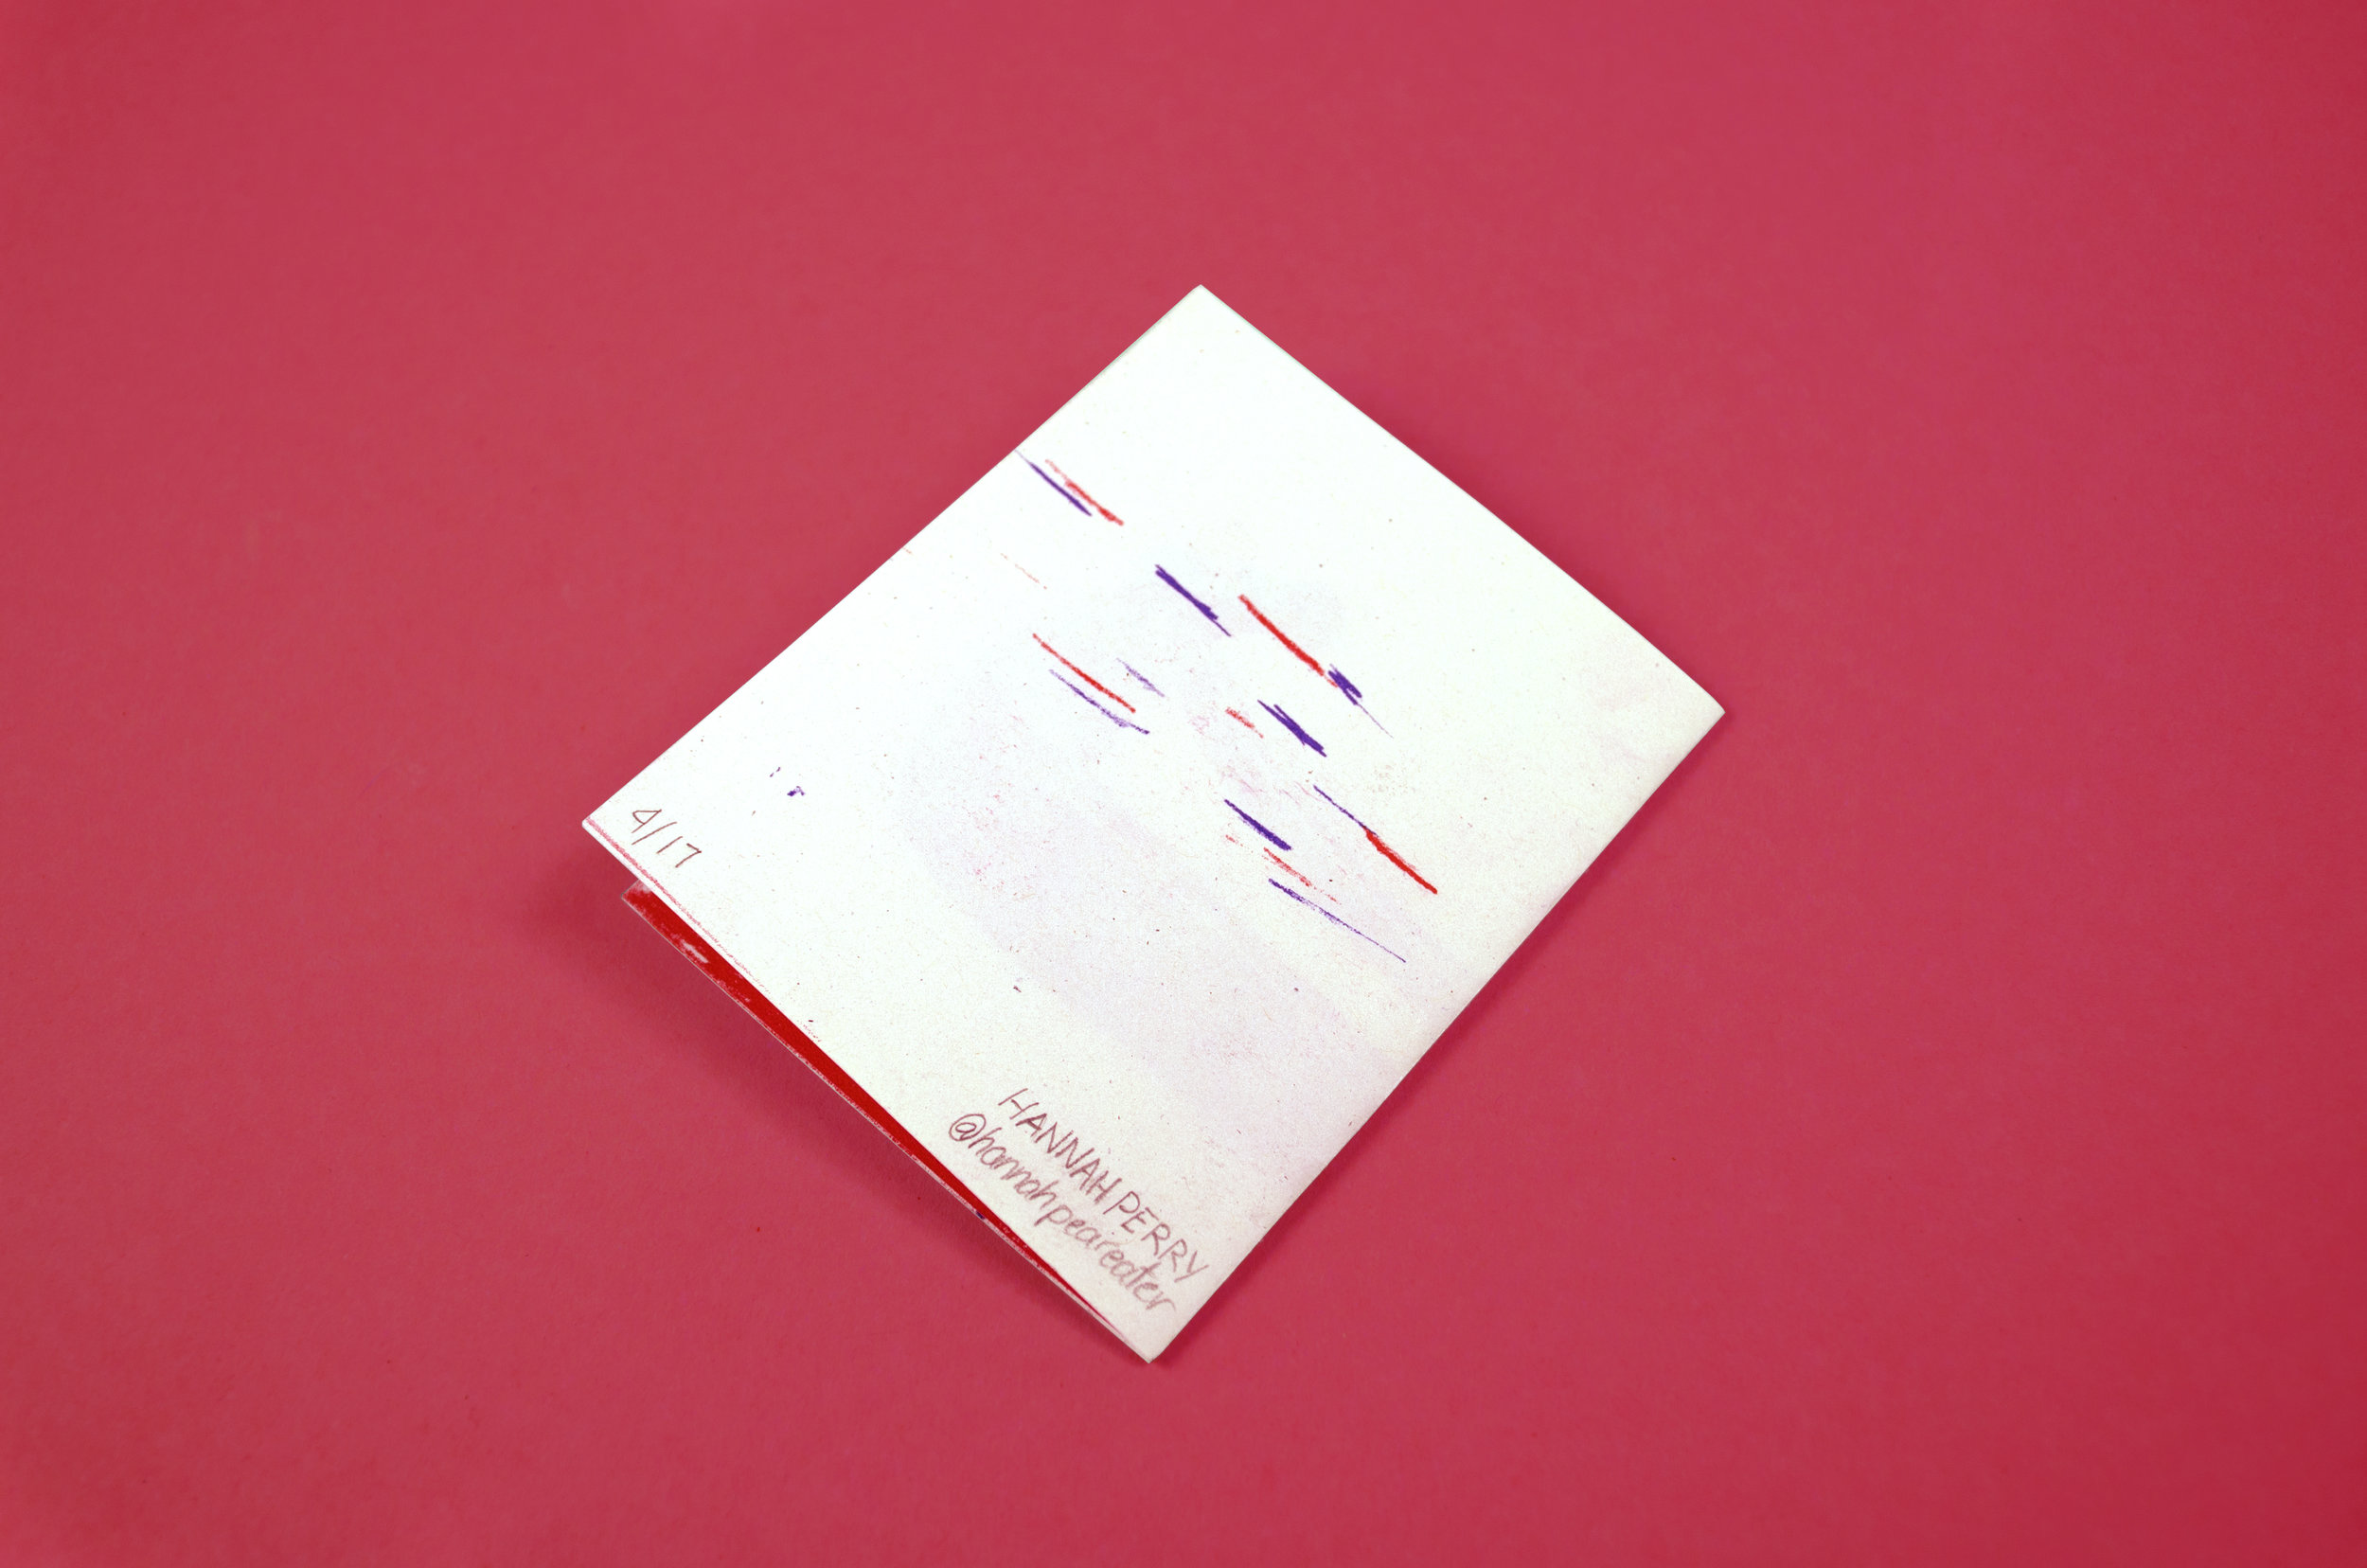 The Red Period riso zine by Hannah Perry